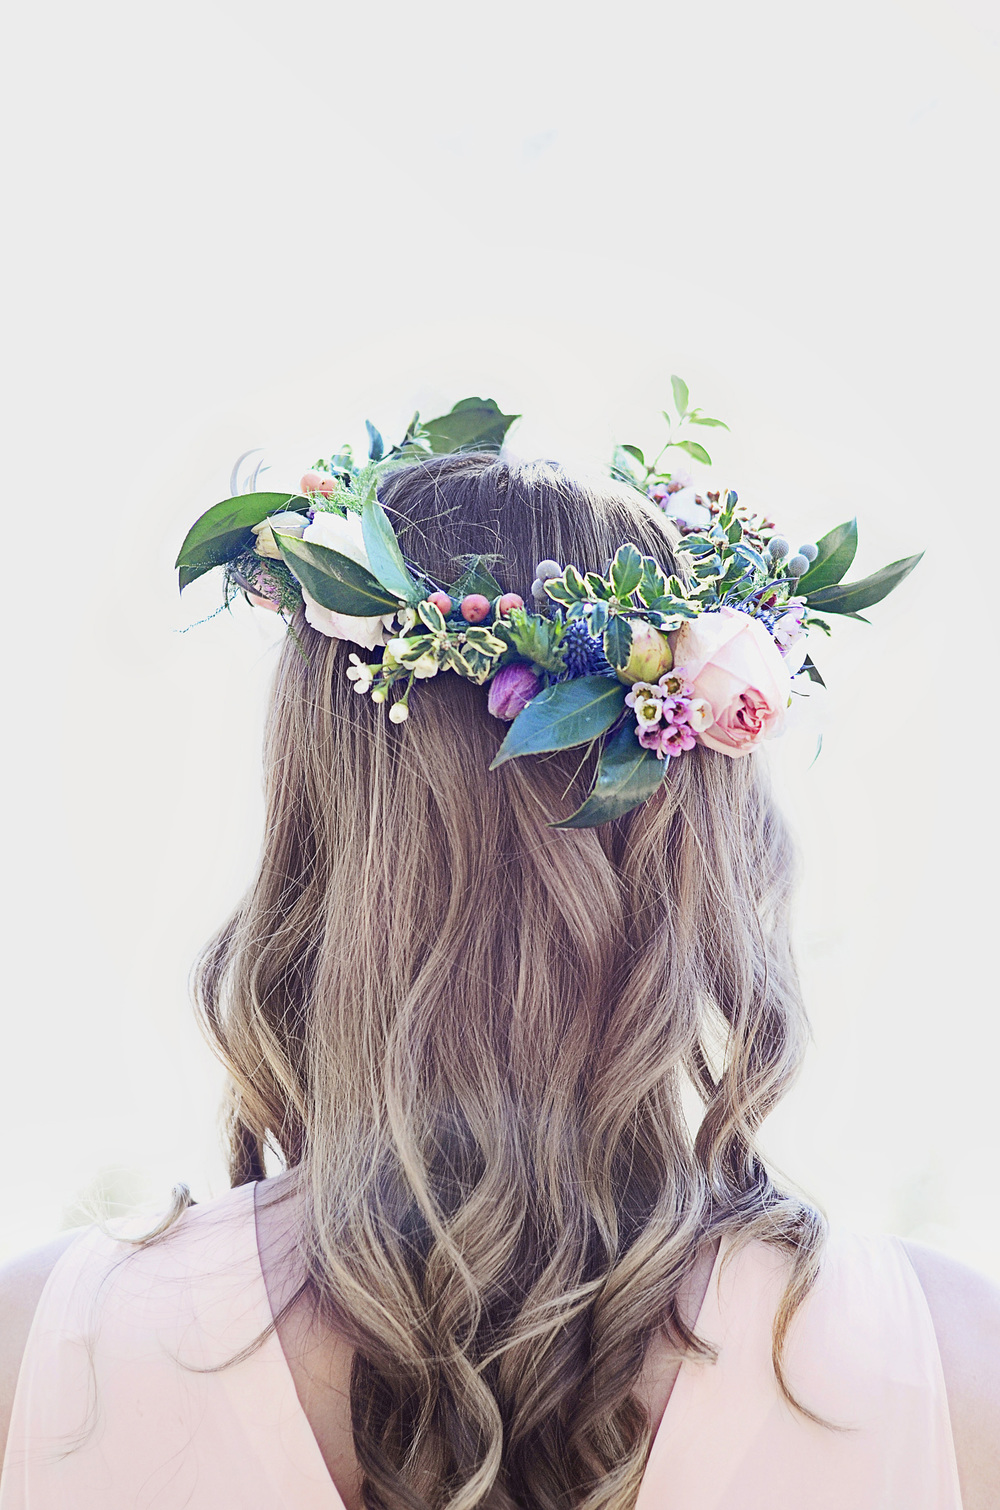 The glory of the flower crown heirlooms a styled spring bohemian shoot by heirlooms the fernweh photographers lilia floral design and izmirmasajfo